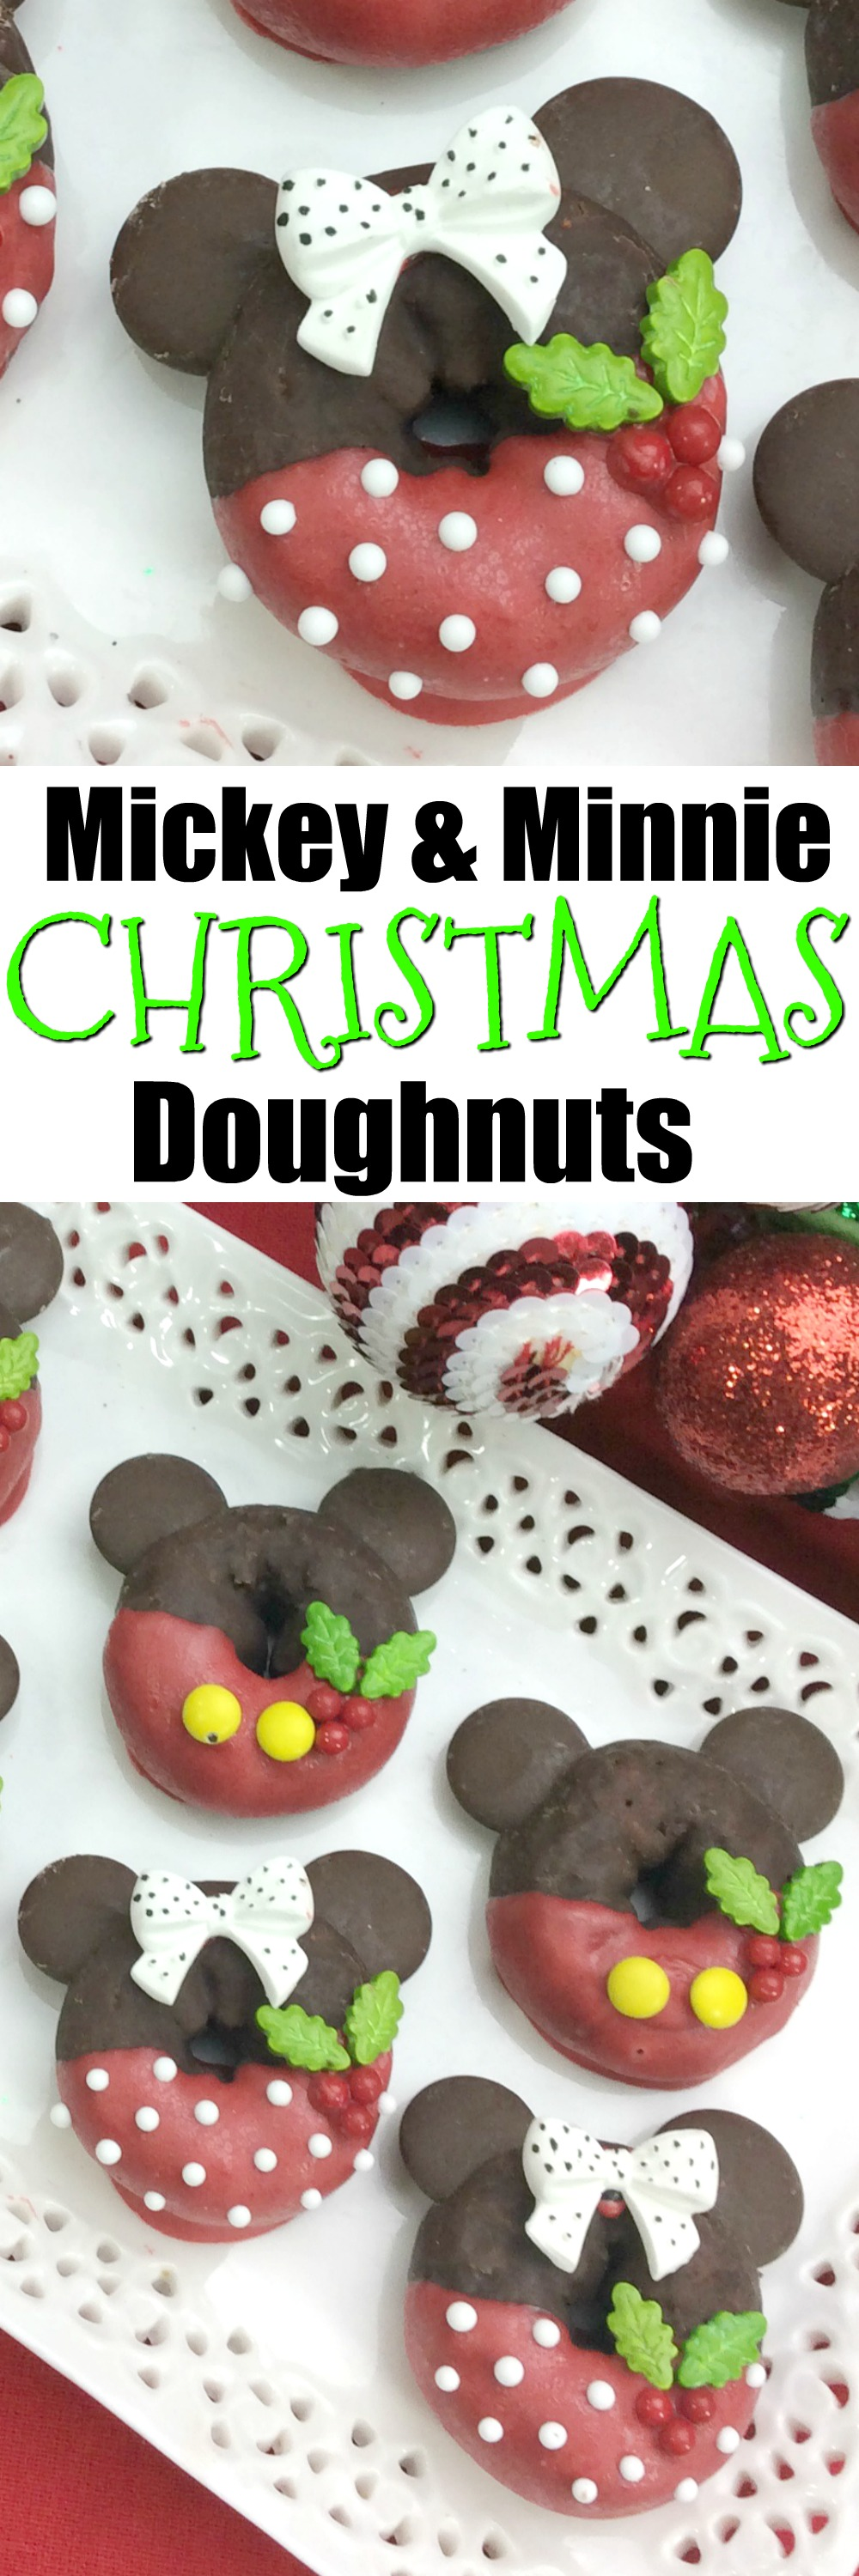 Mickey & Minnie #Christmas Doughnuts! This is a fun kid friendly #breakfast recipe that is quick and easy to make. #Disney